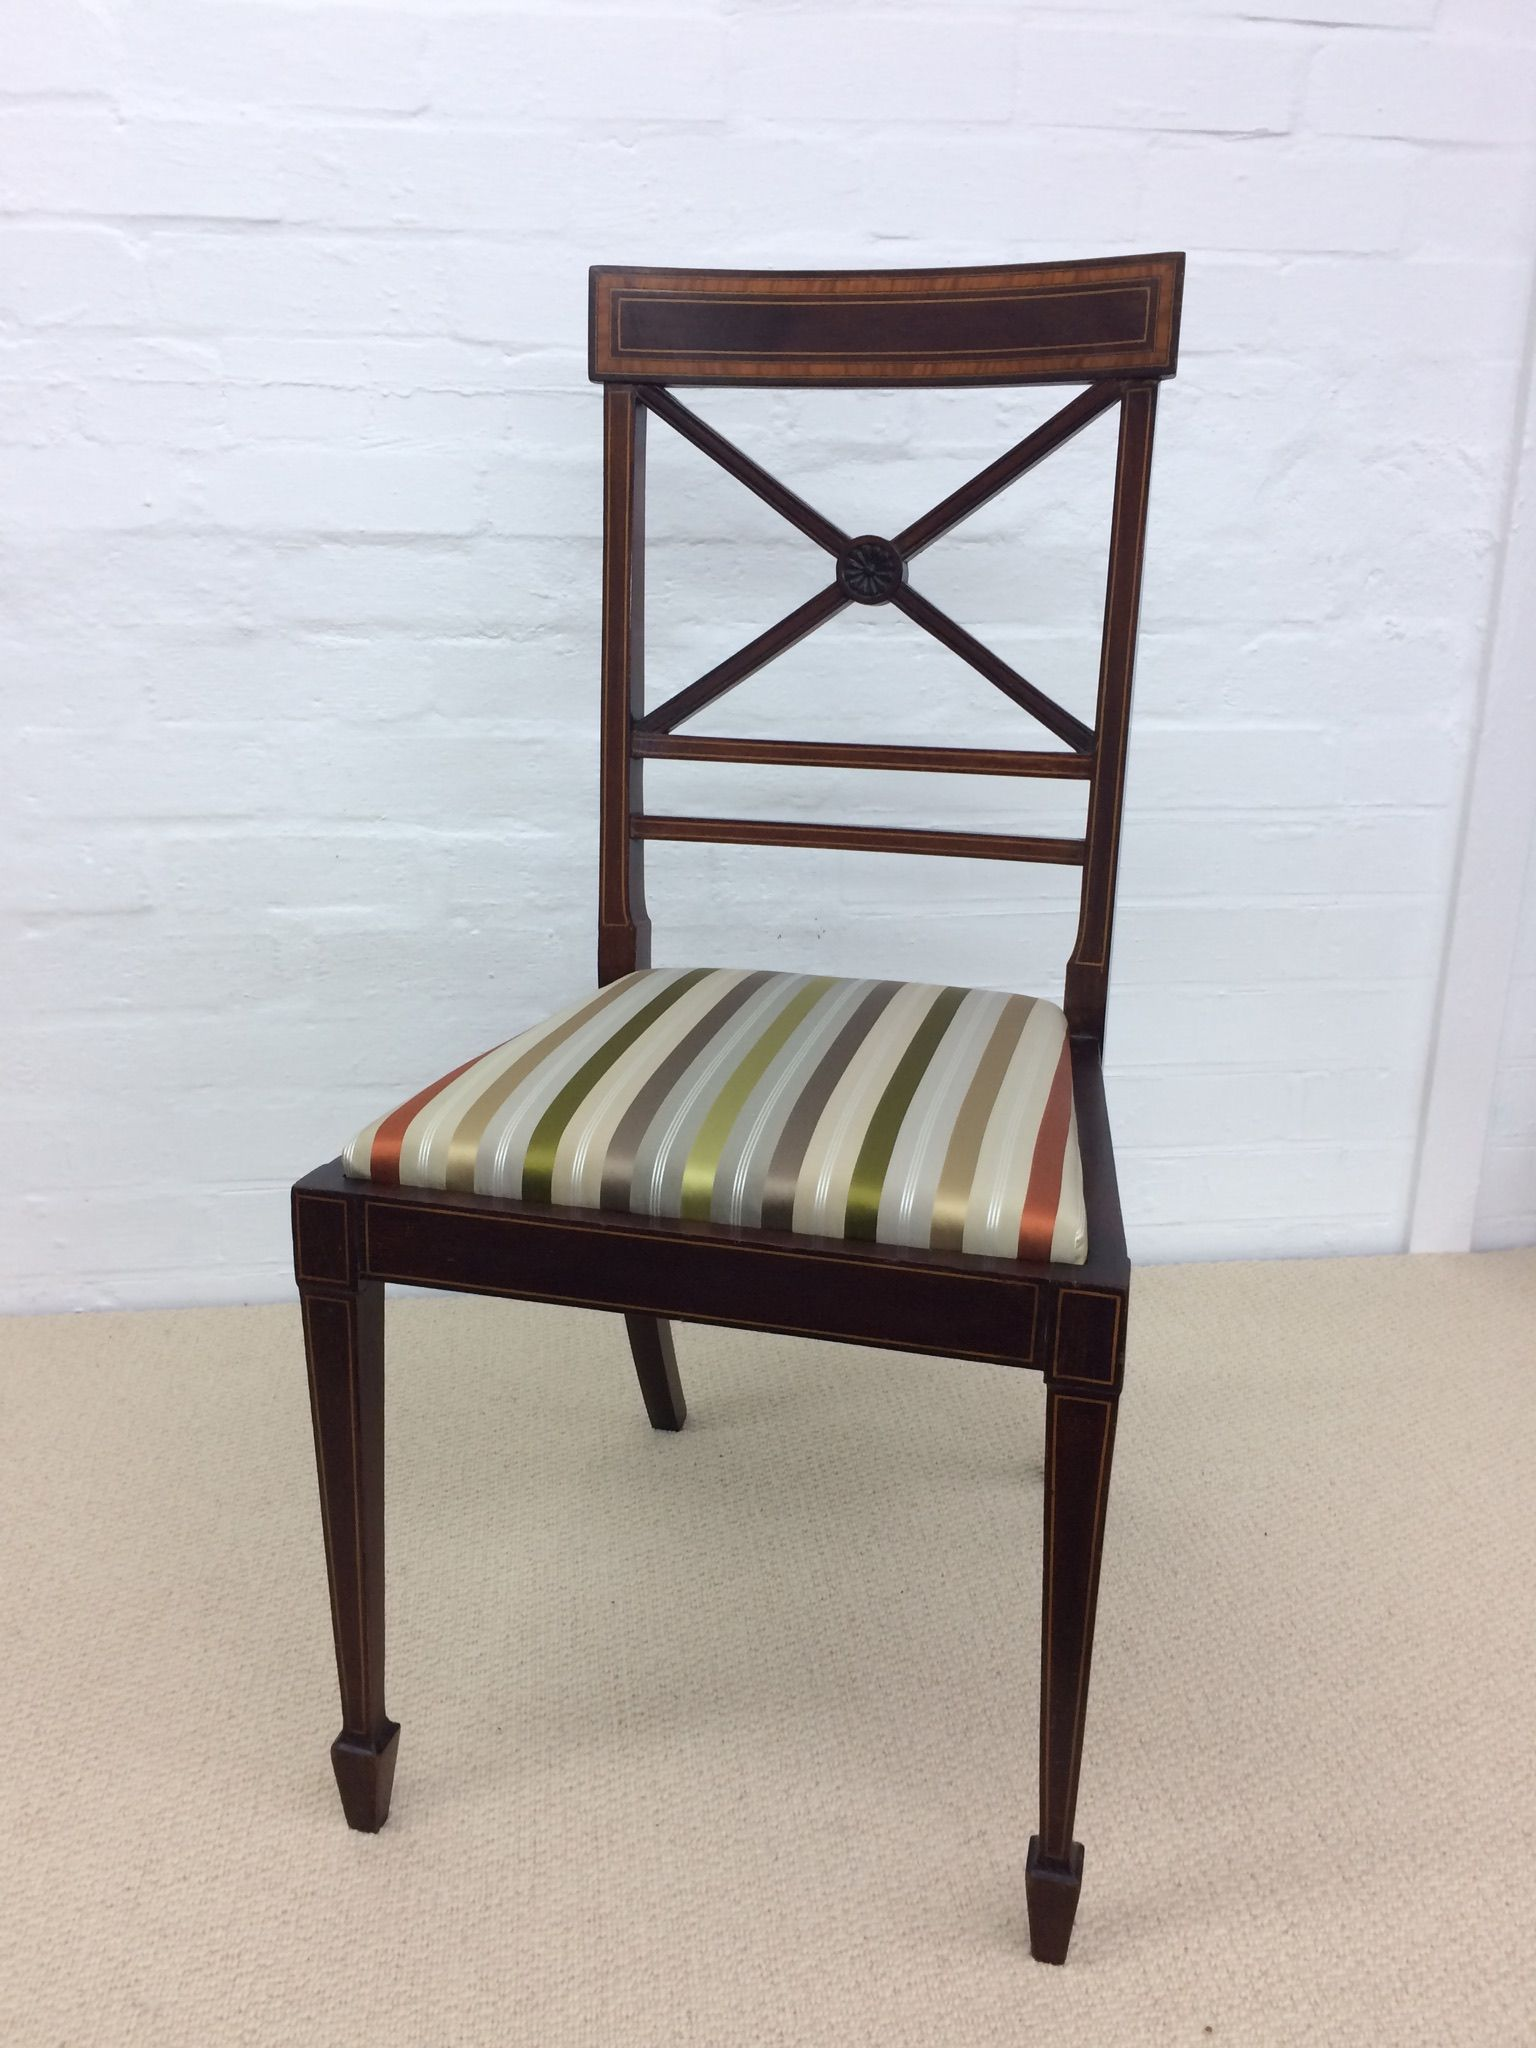 Edwardian Inlaid Chair reupholstered in a silk stripe